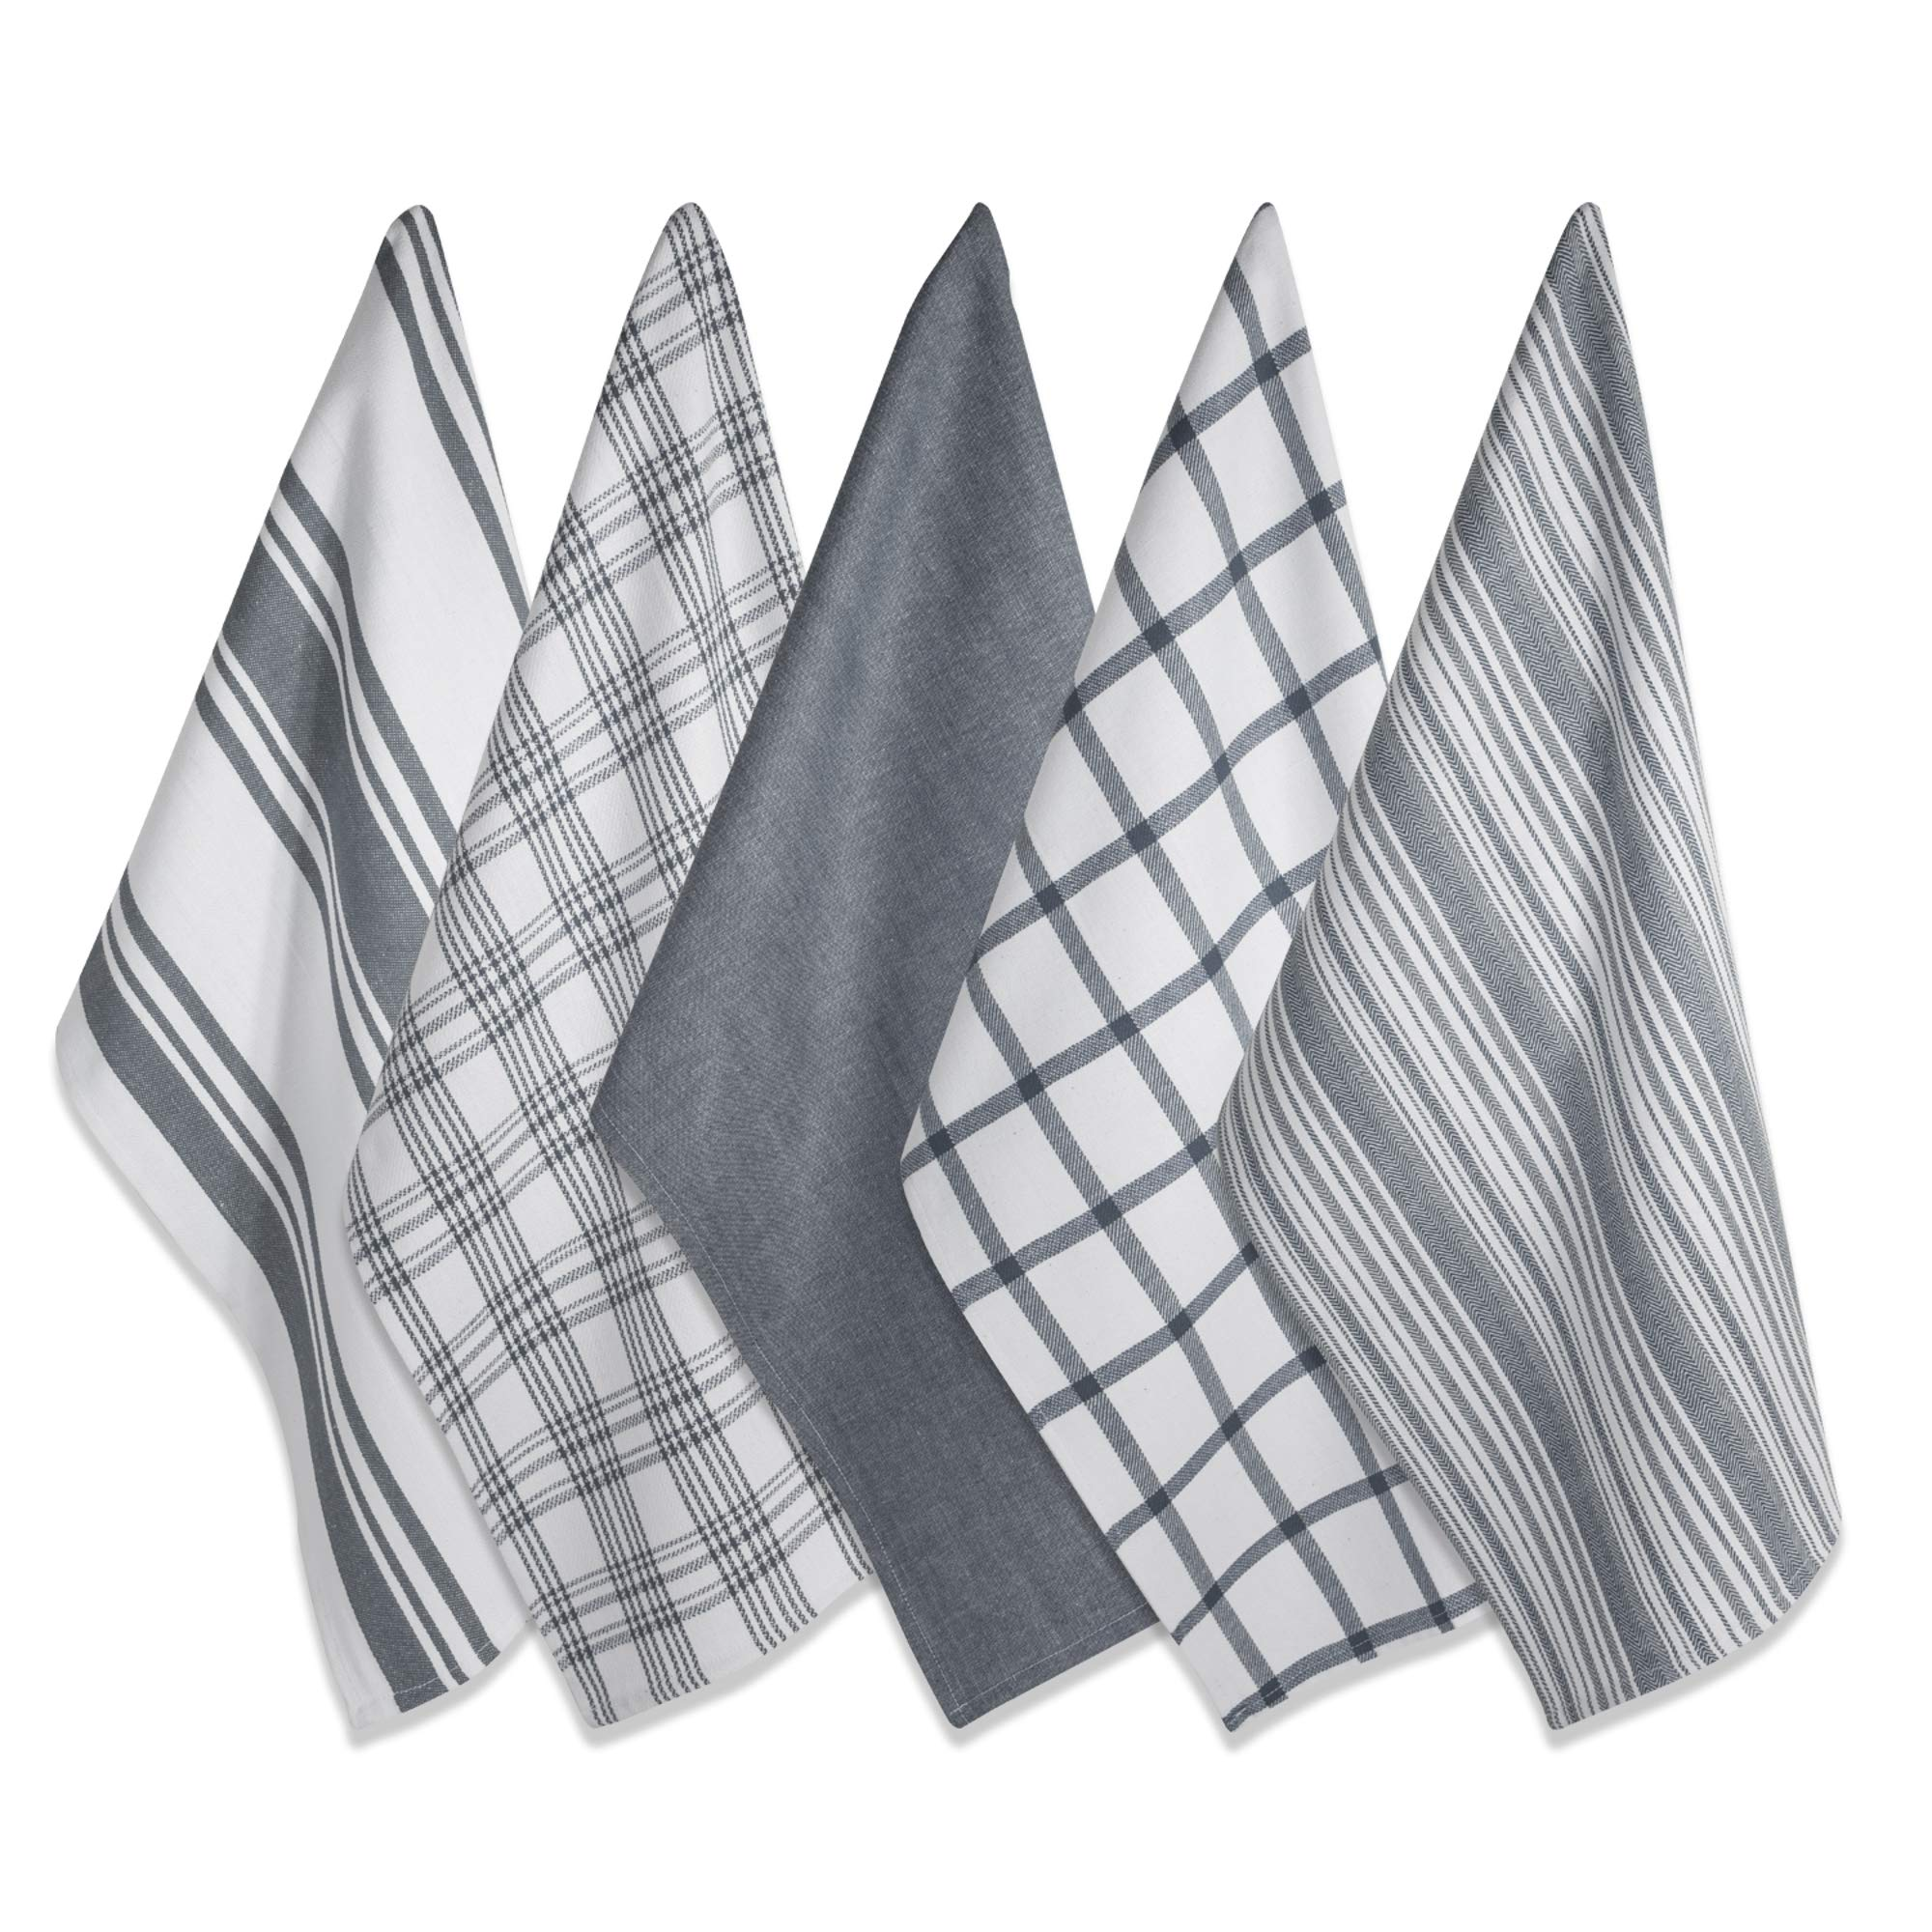 DII Kitchen Dish Towels (Gray, 18x28''), Ultra Absorbent & Fast Drying, Professional Grade Cotton Tea Towels for Everyday Cooking and Baking -  Assorted Patterns, Set of 5 by DII